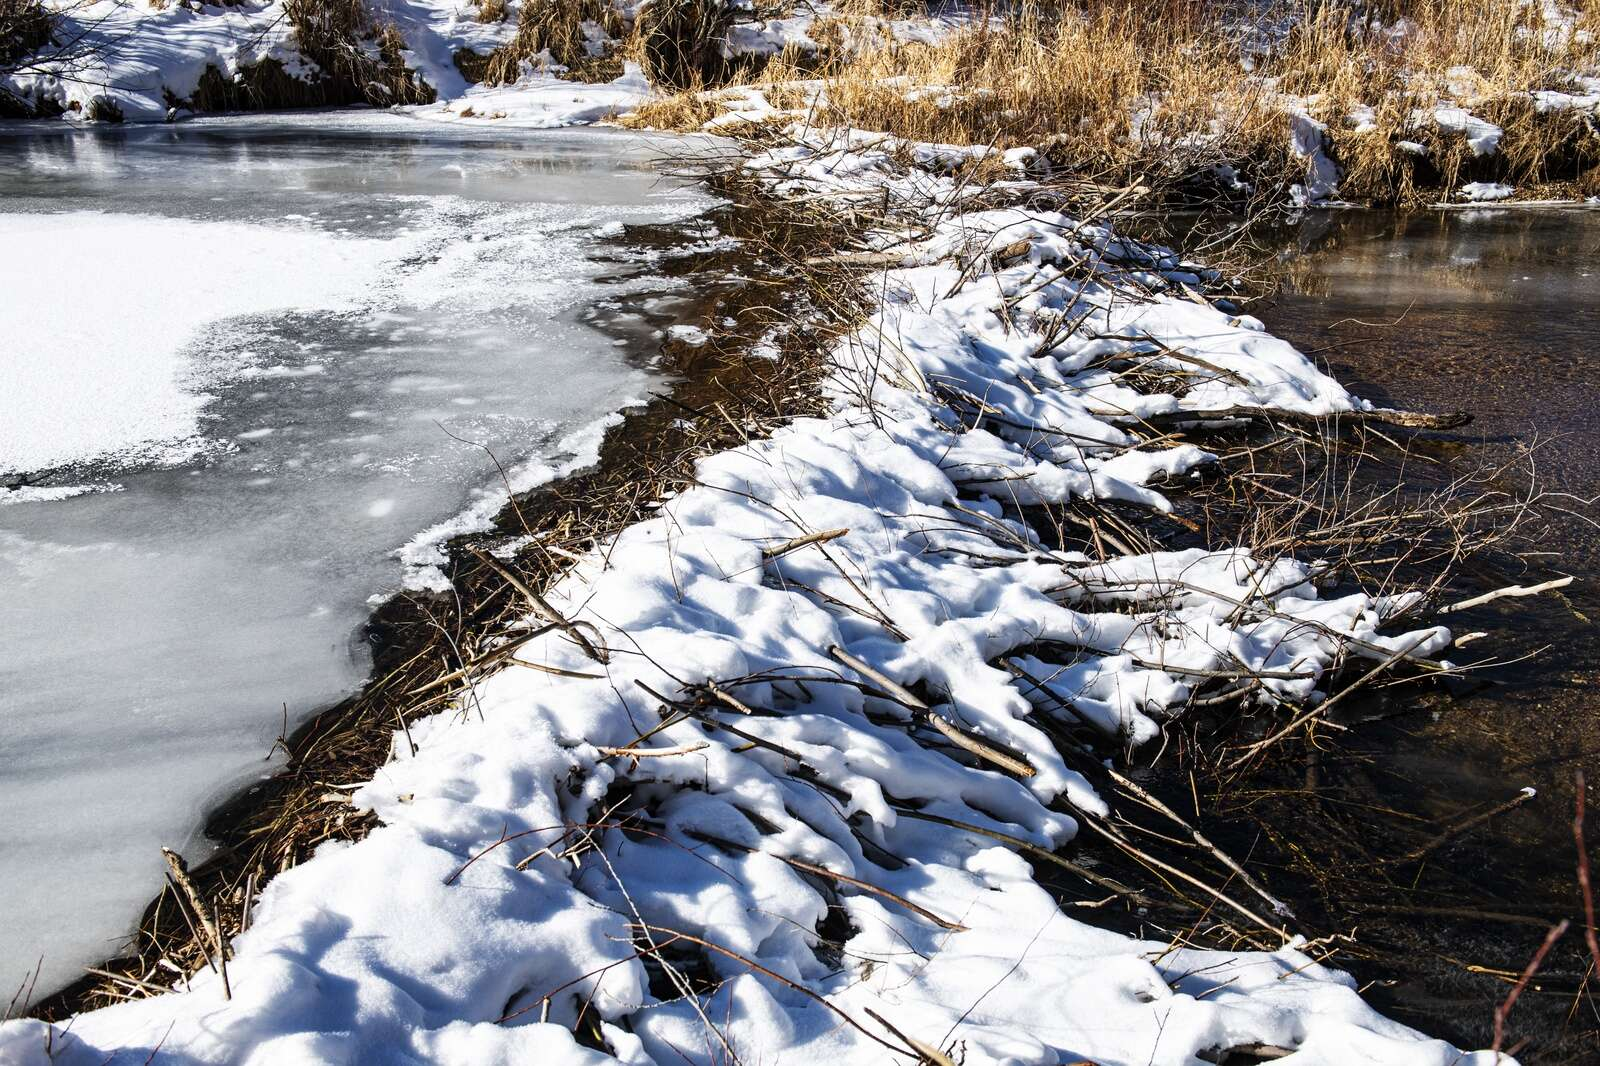 Water flows downstream from a dam, as it is frozen above the dam in the Roaring Fork River in Northstar Nature Preserve on Friday, Dec. 4, 2020. The dam is believed to have been built sometime this fall. (Kelsey Brunner/The Aspen Times)